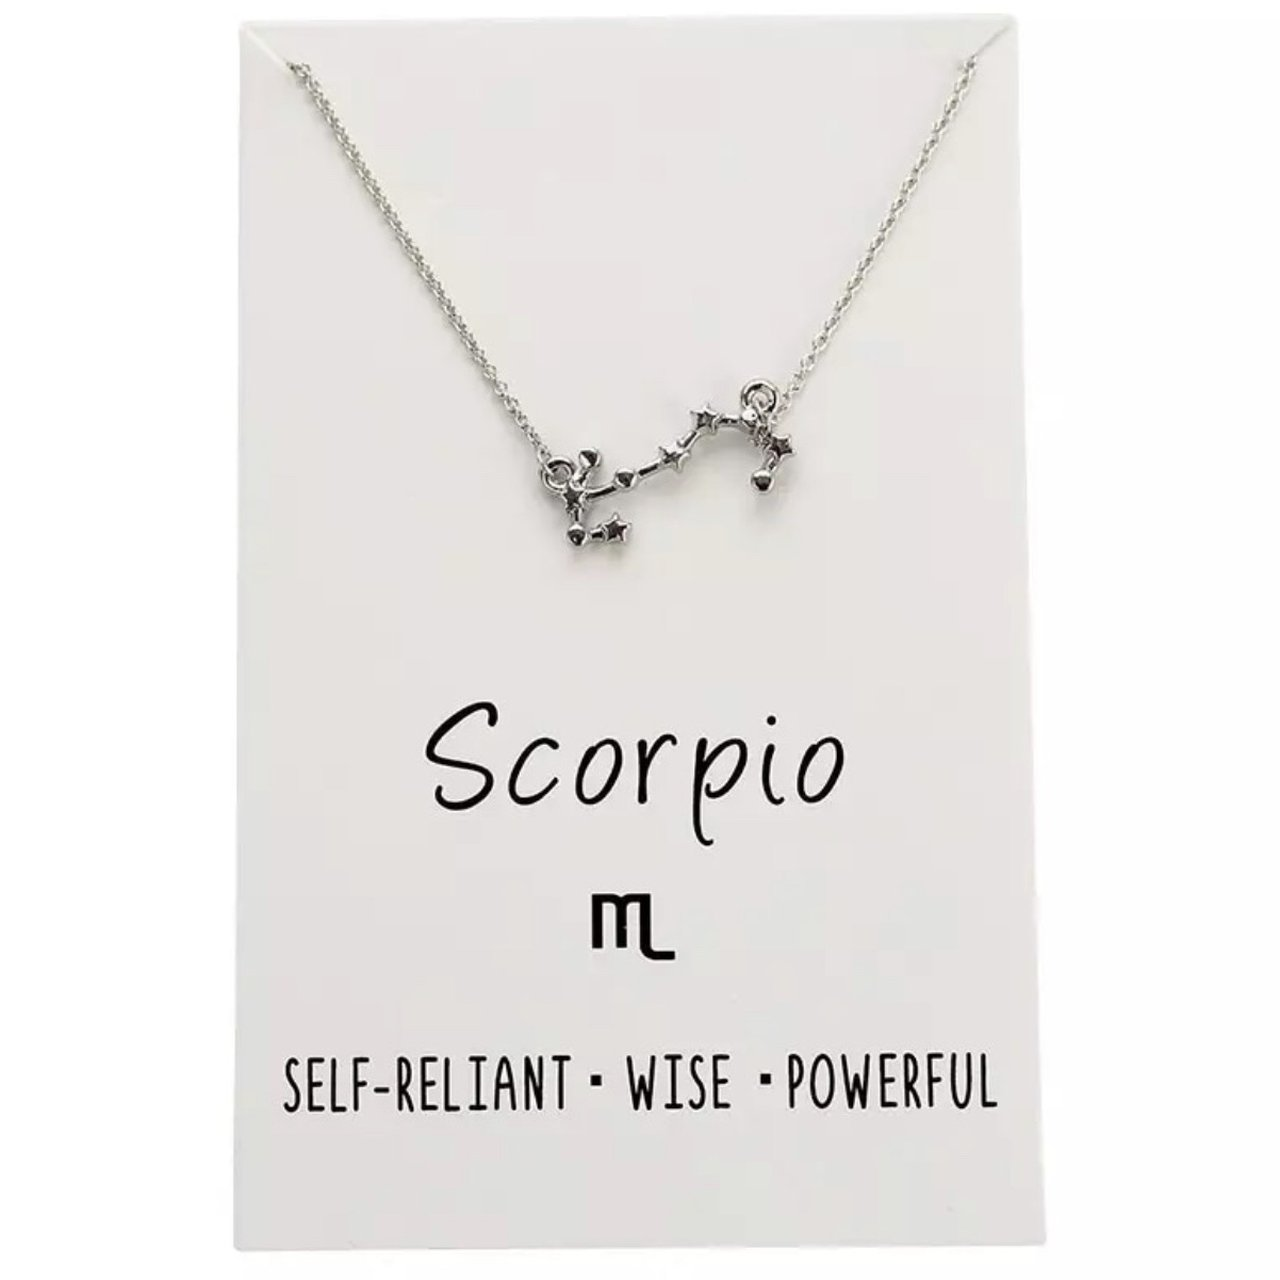 Scorpio Astrology Necklace Nwt Silver On An 18 Chain Depop